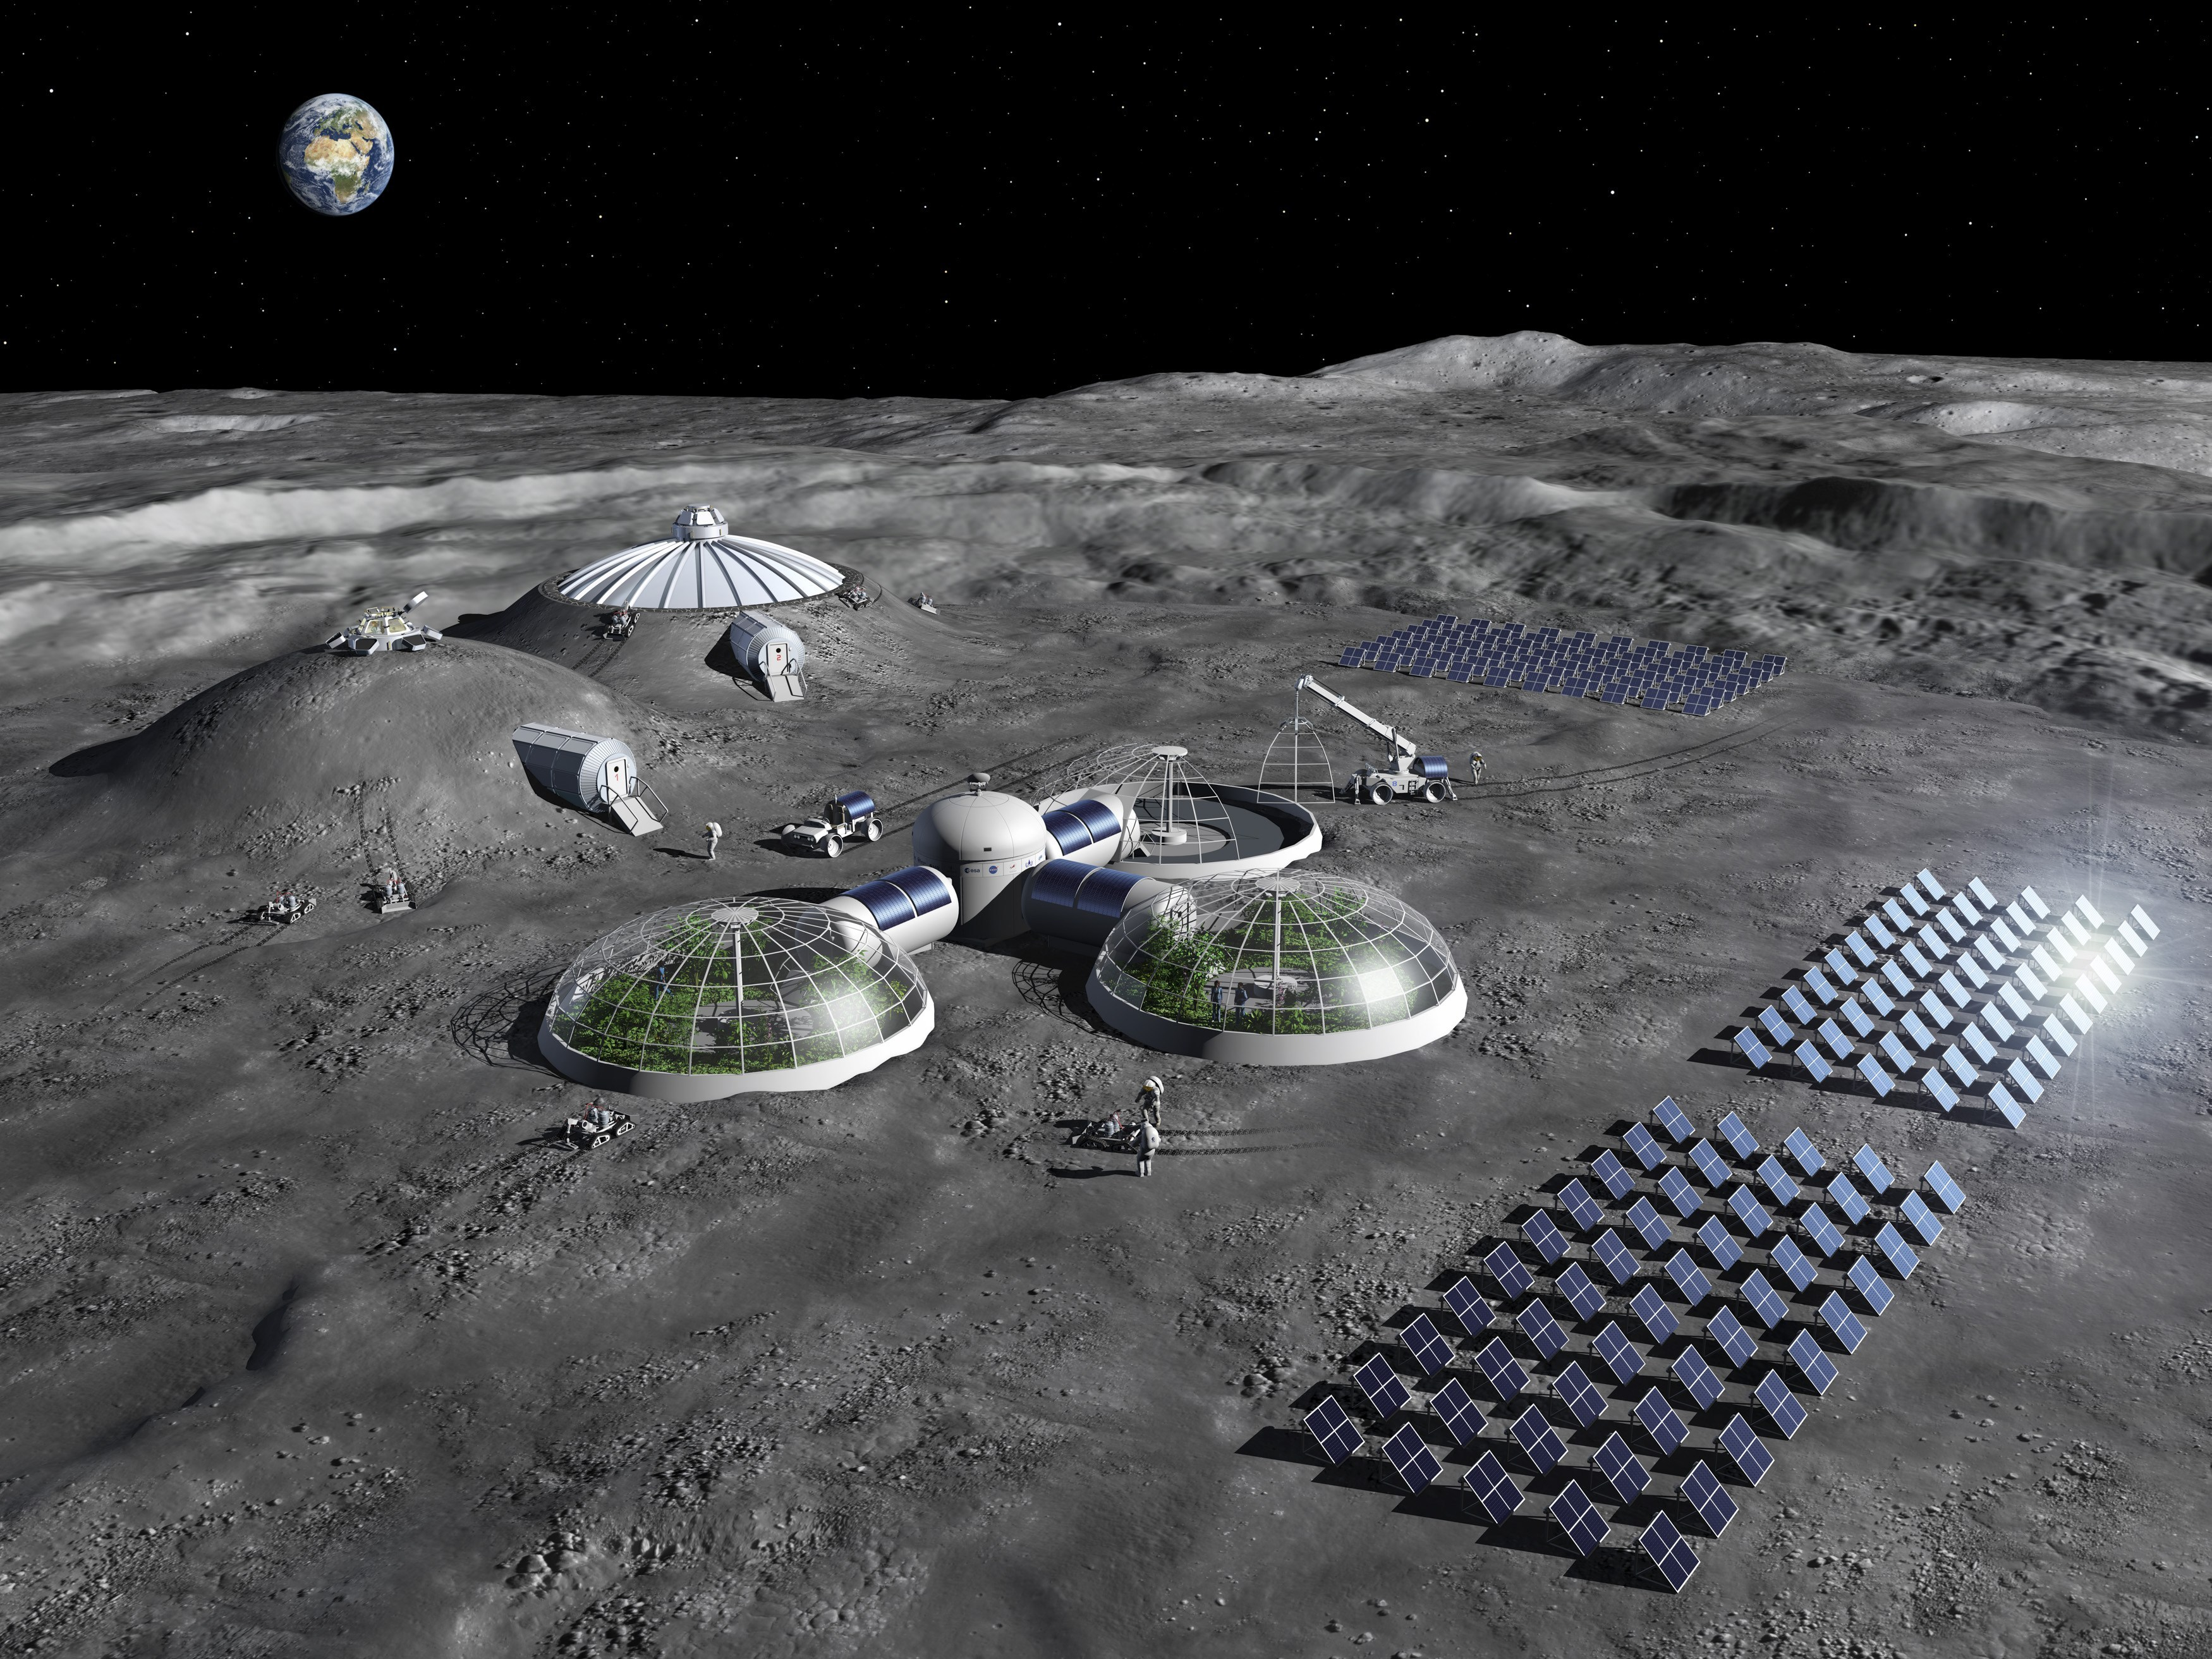 Nasa to colonise the moon with astronaut base ready for trip to Mars